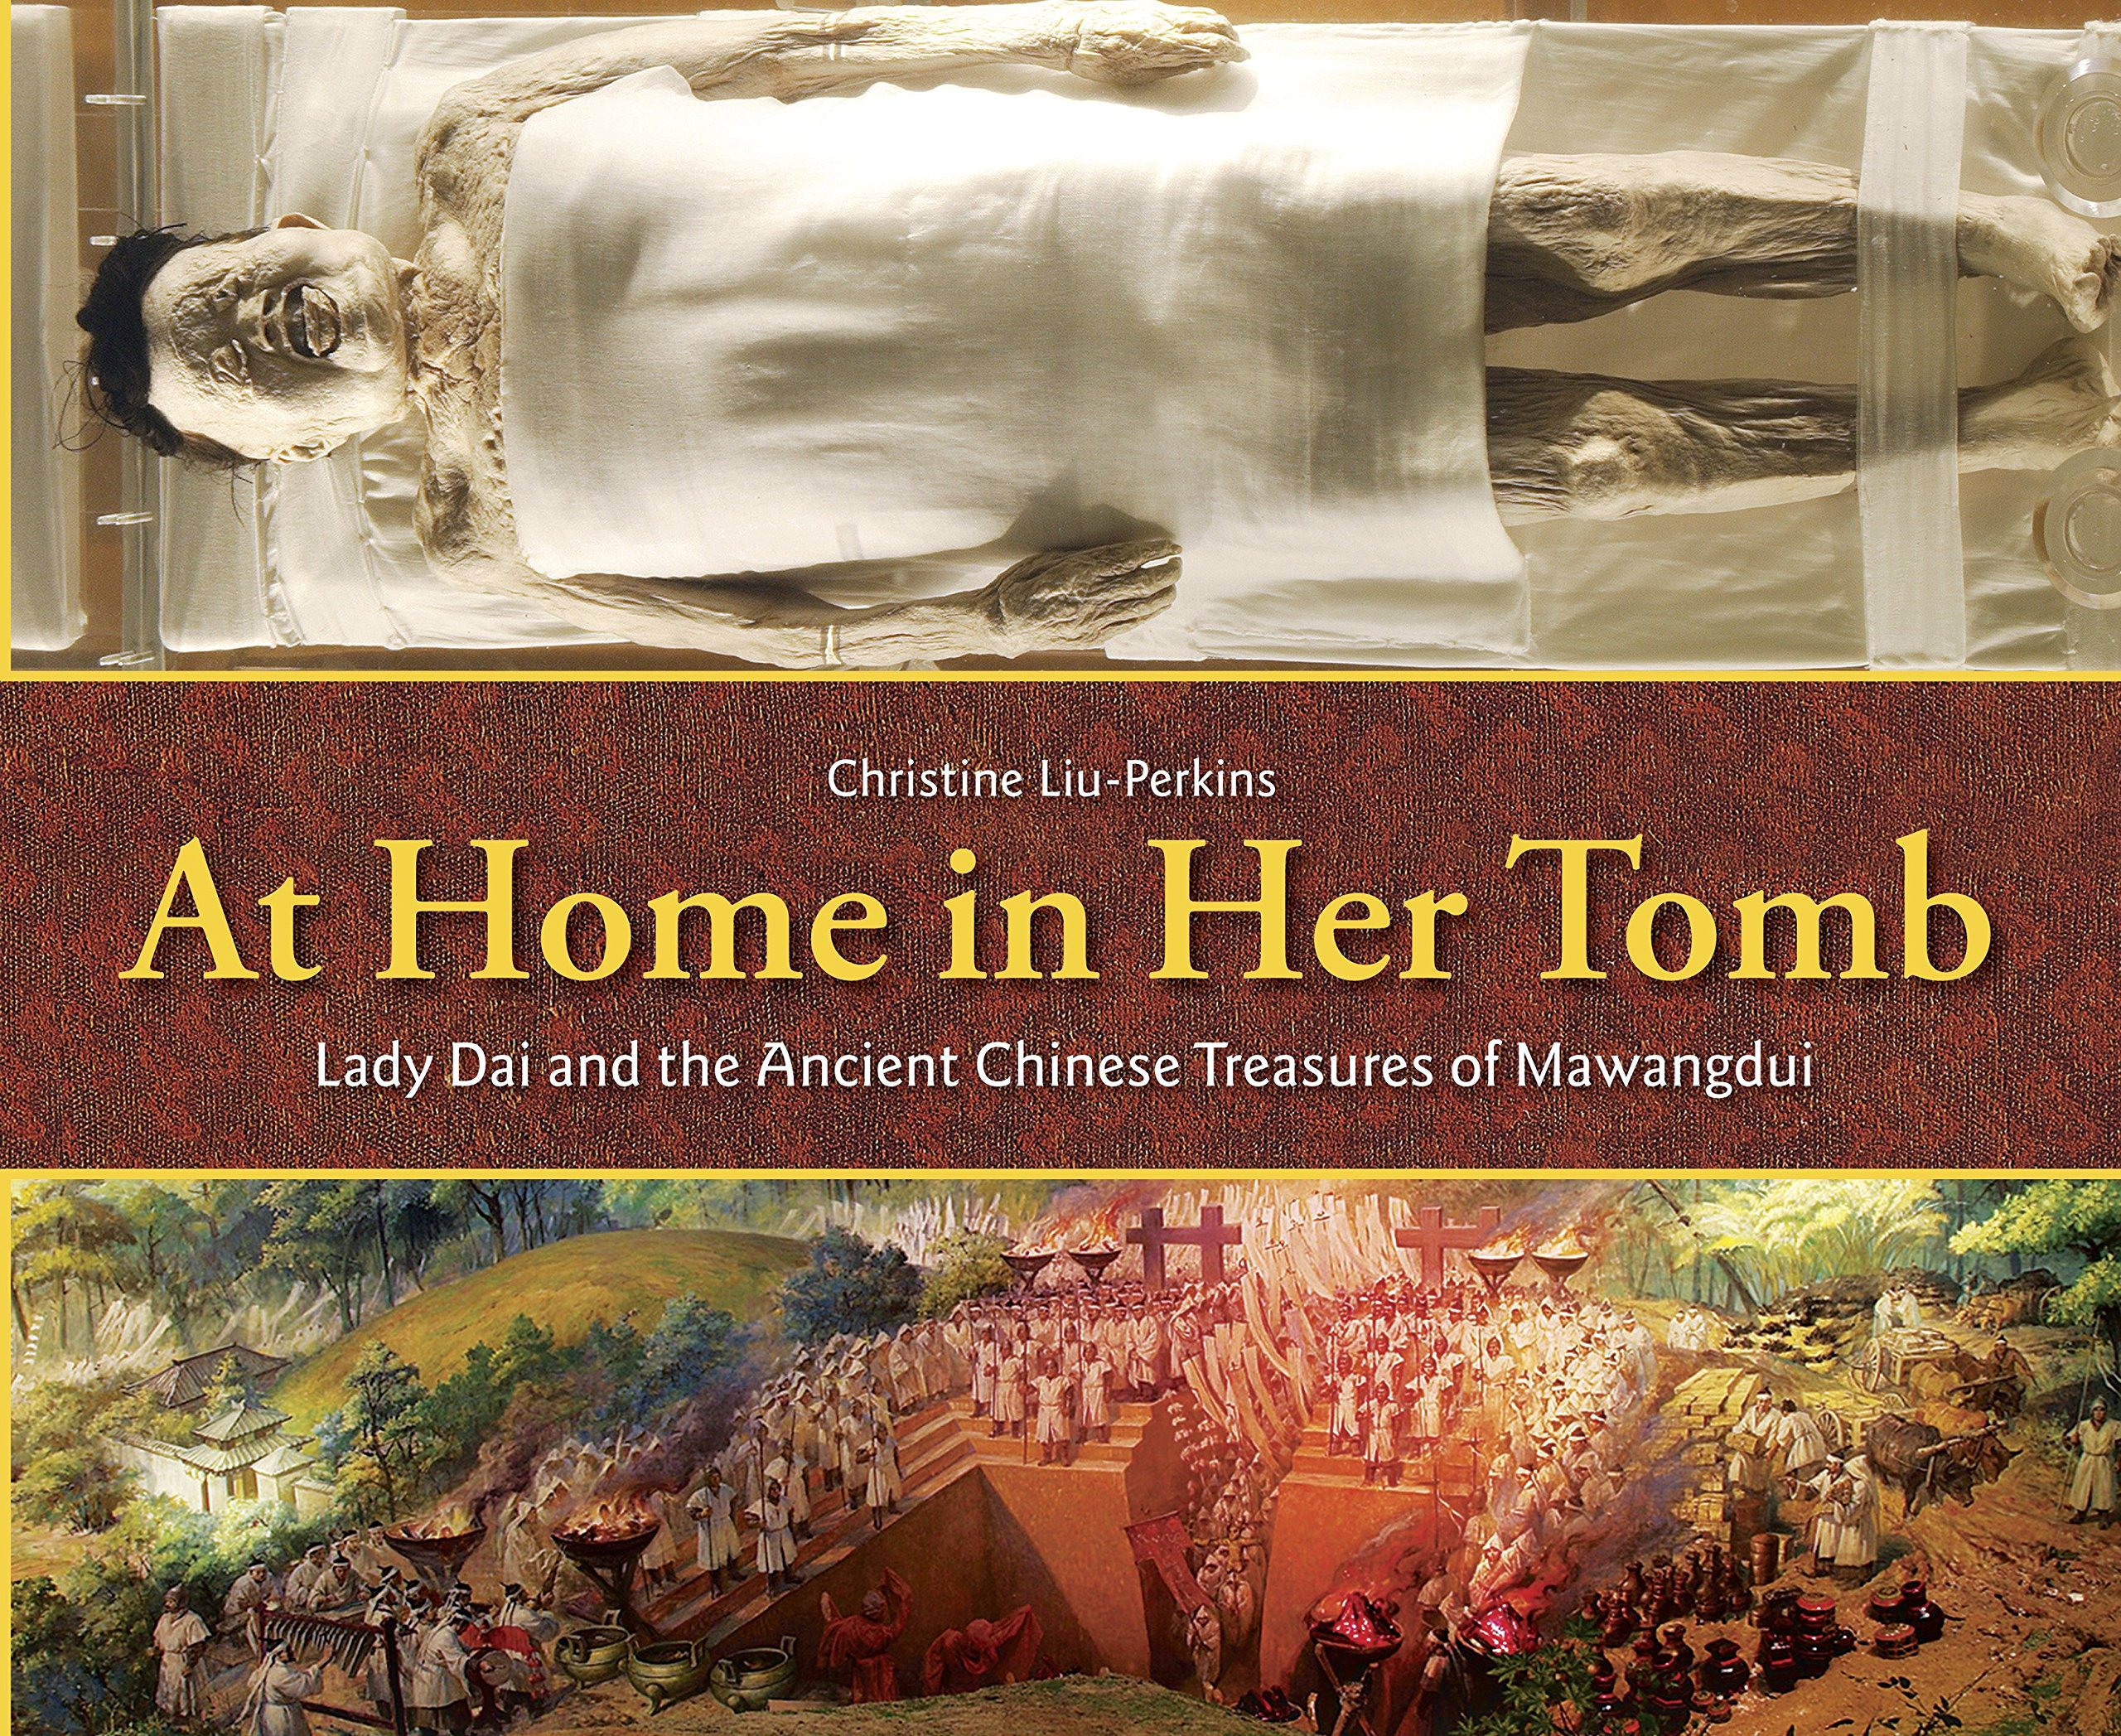 At Home in Her Tomb: Lady Dai and the Ancient Chinese Treasures of Mawangdui PDF